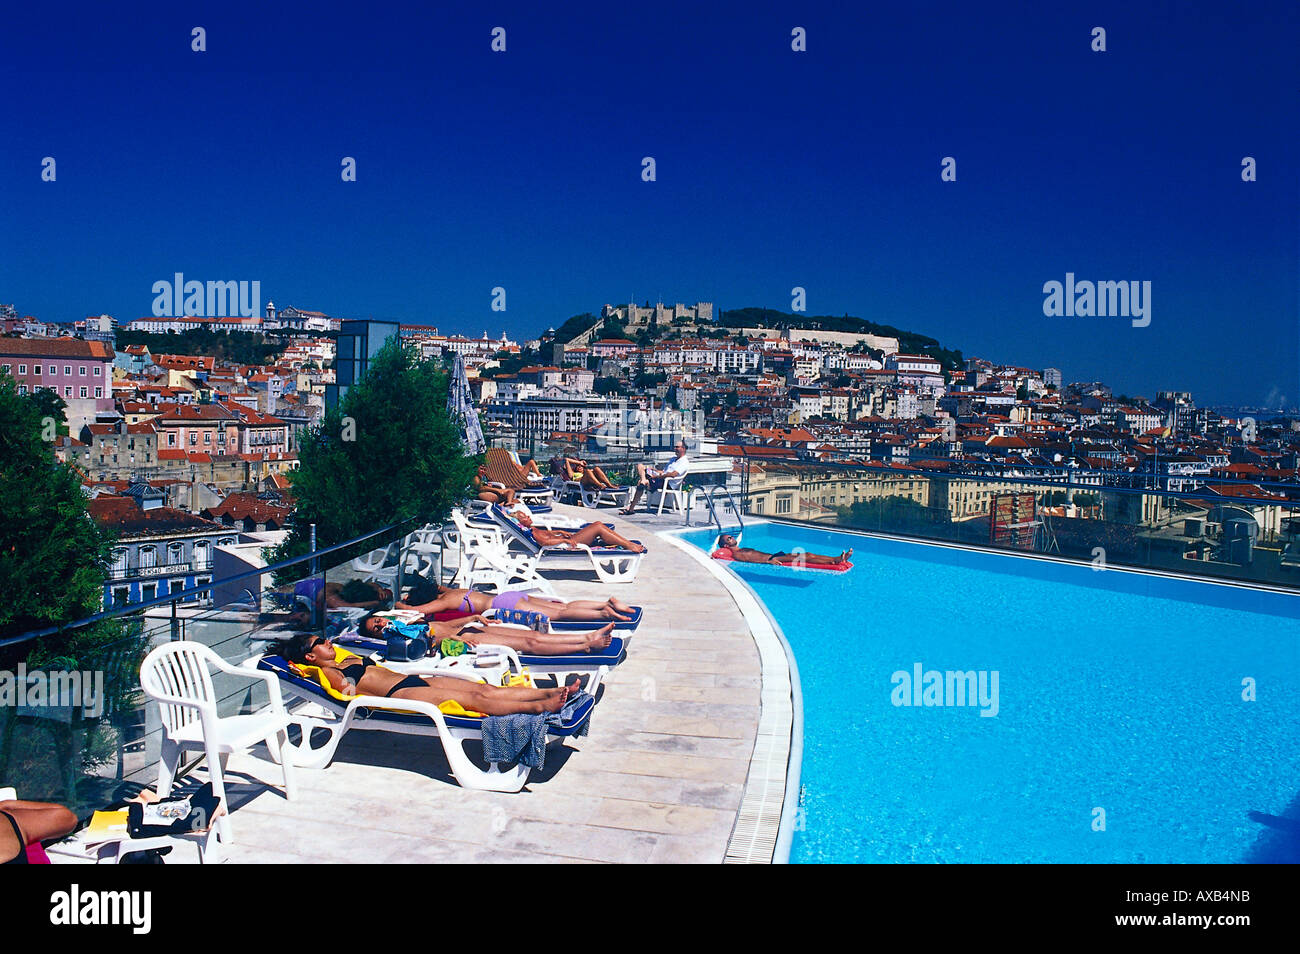 Rooftop terrace and swimming pool stock photos rooftop - Hotels in lisbon portugal with swimming pool ...